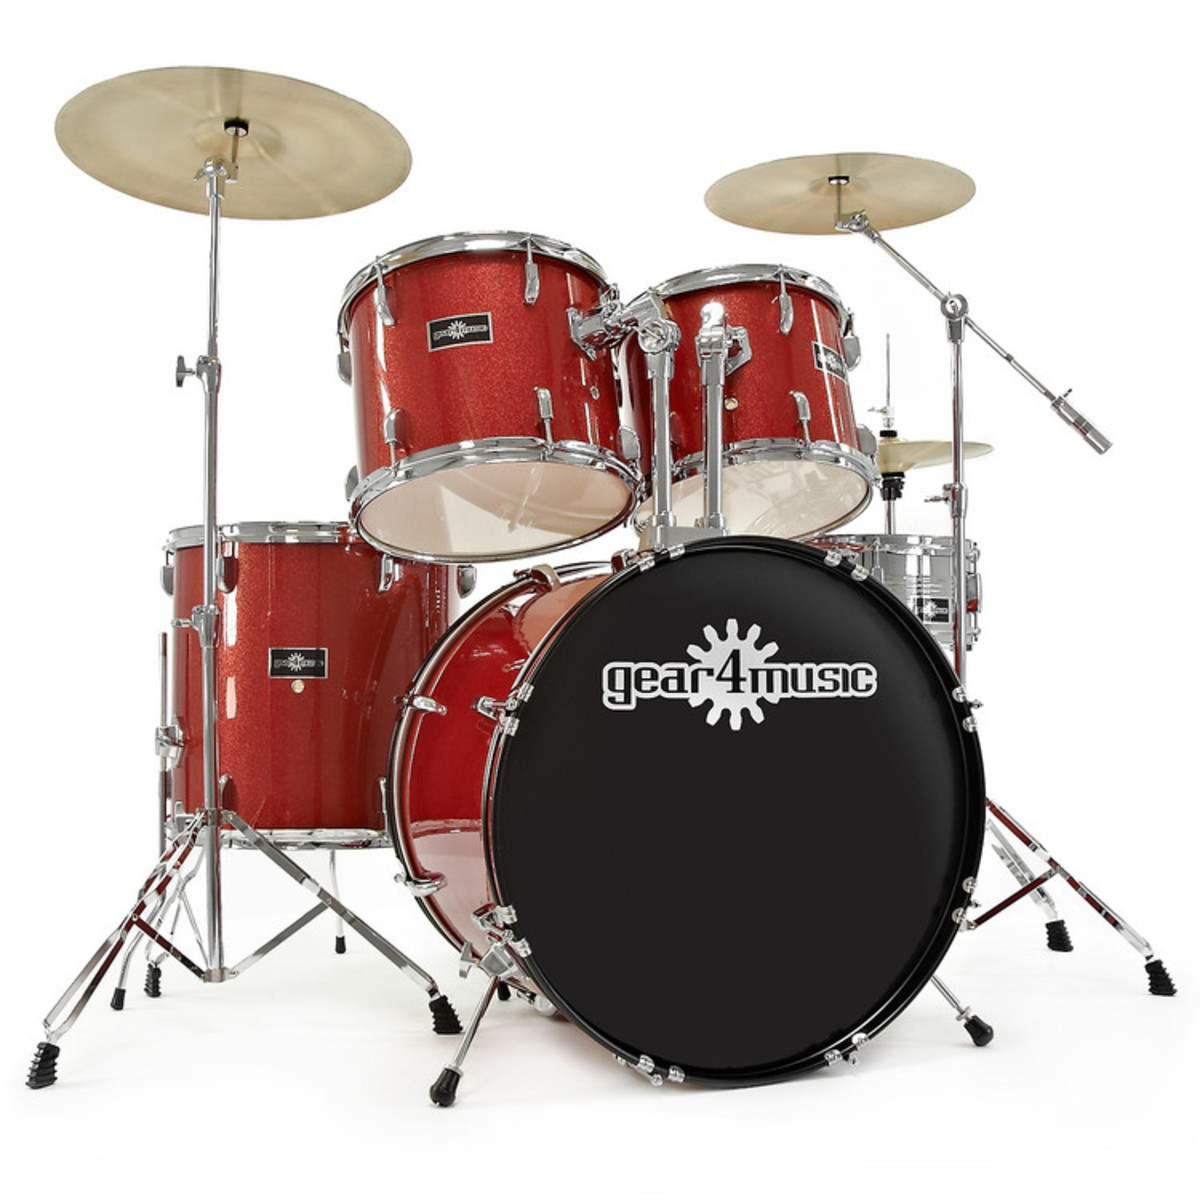 Gd 7 Drum Kit By Gear4music Red Sparkle At Gear4music Com